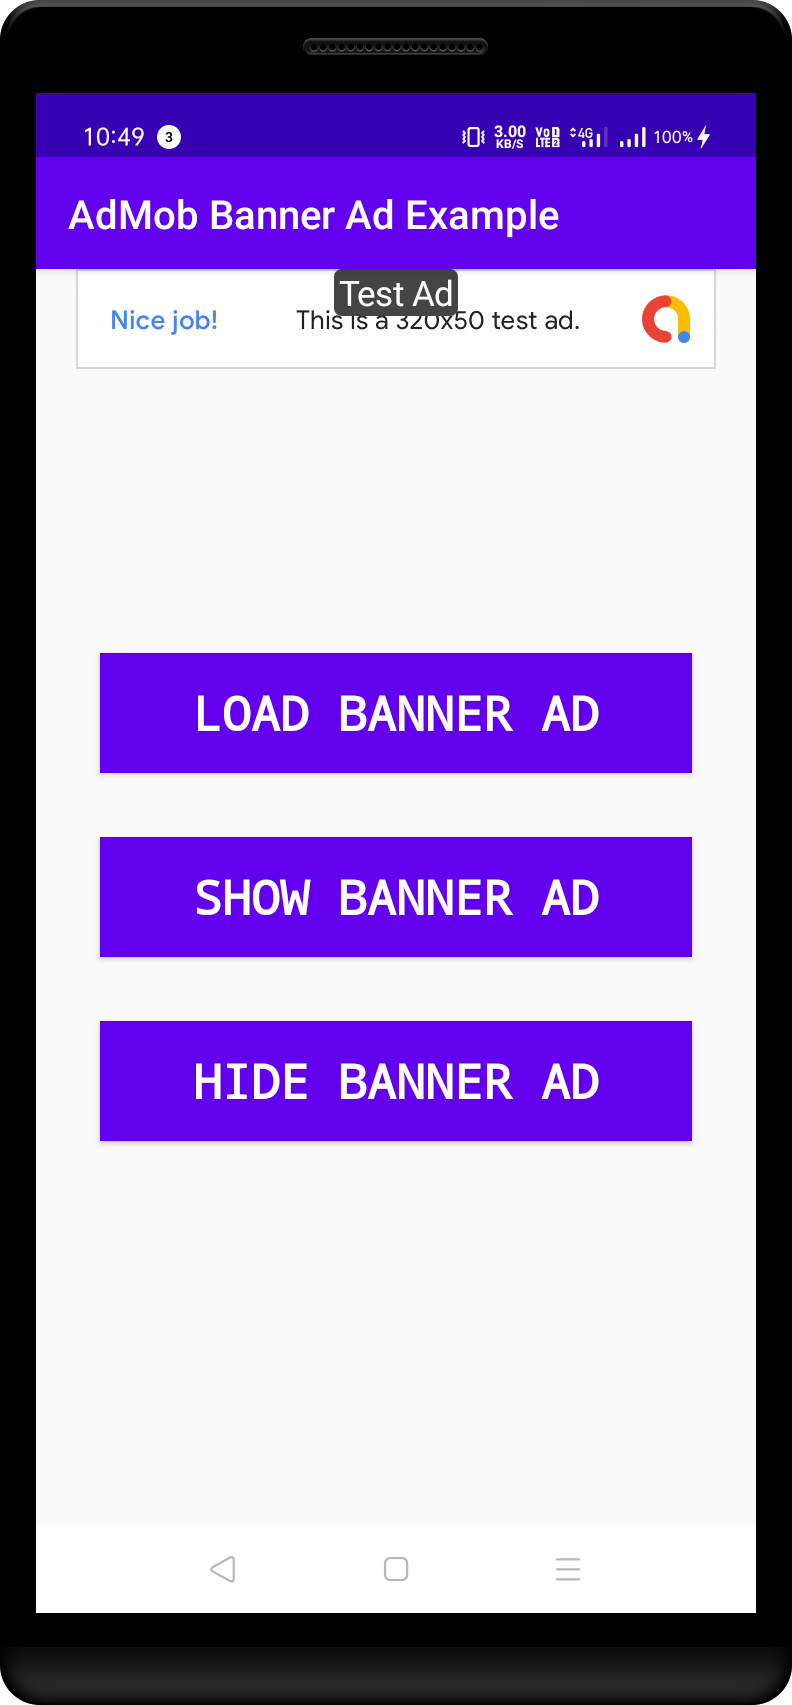 Admin Banner Ad Shown at the top of the screen